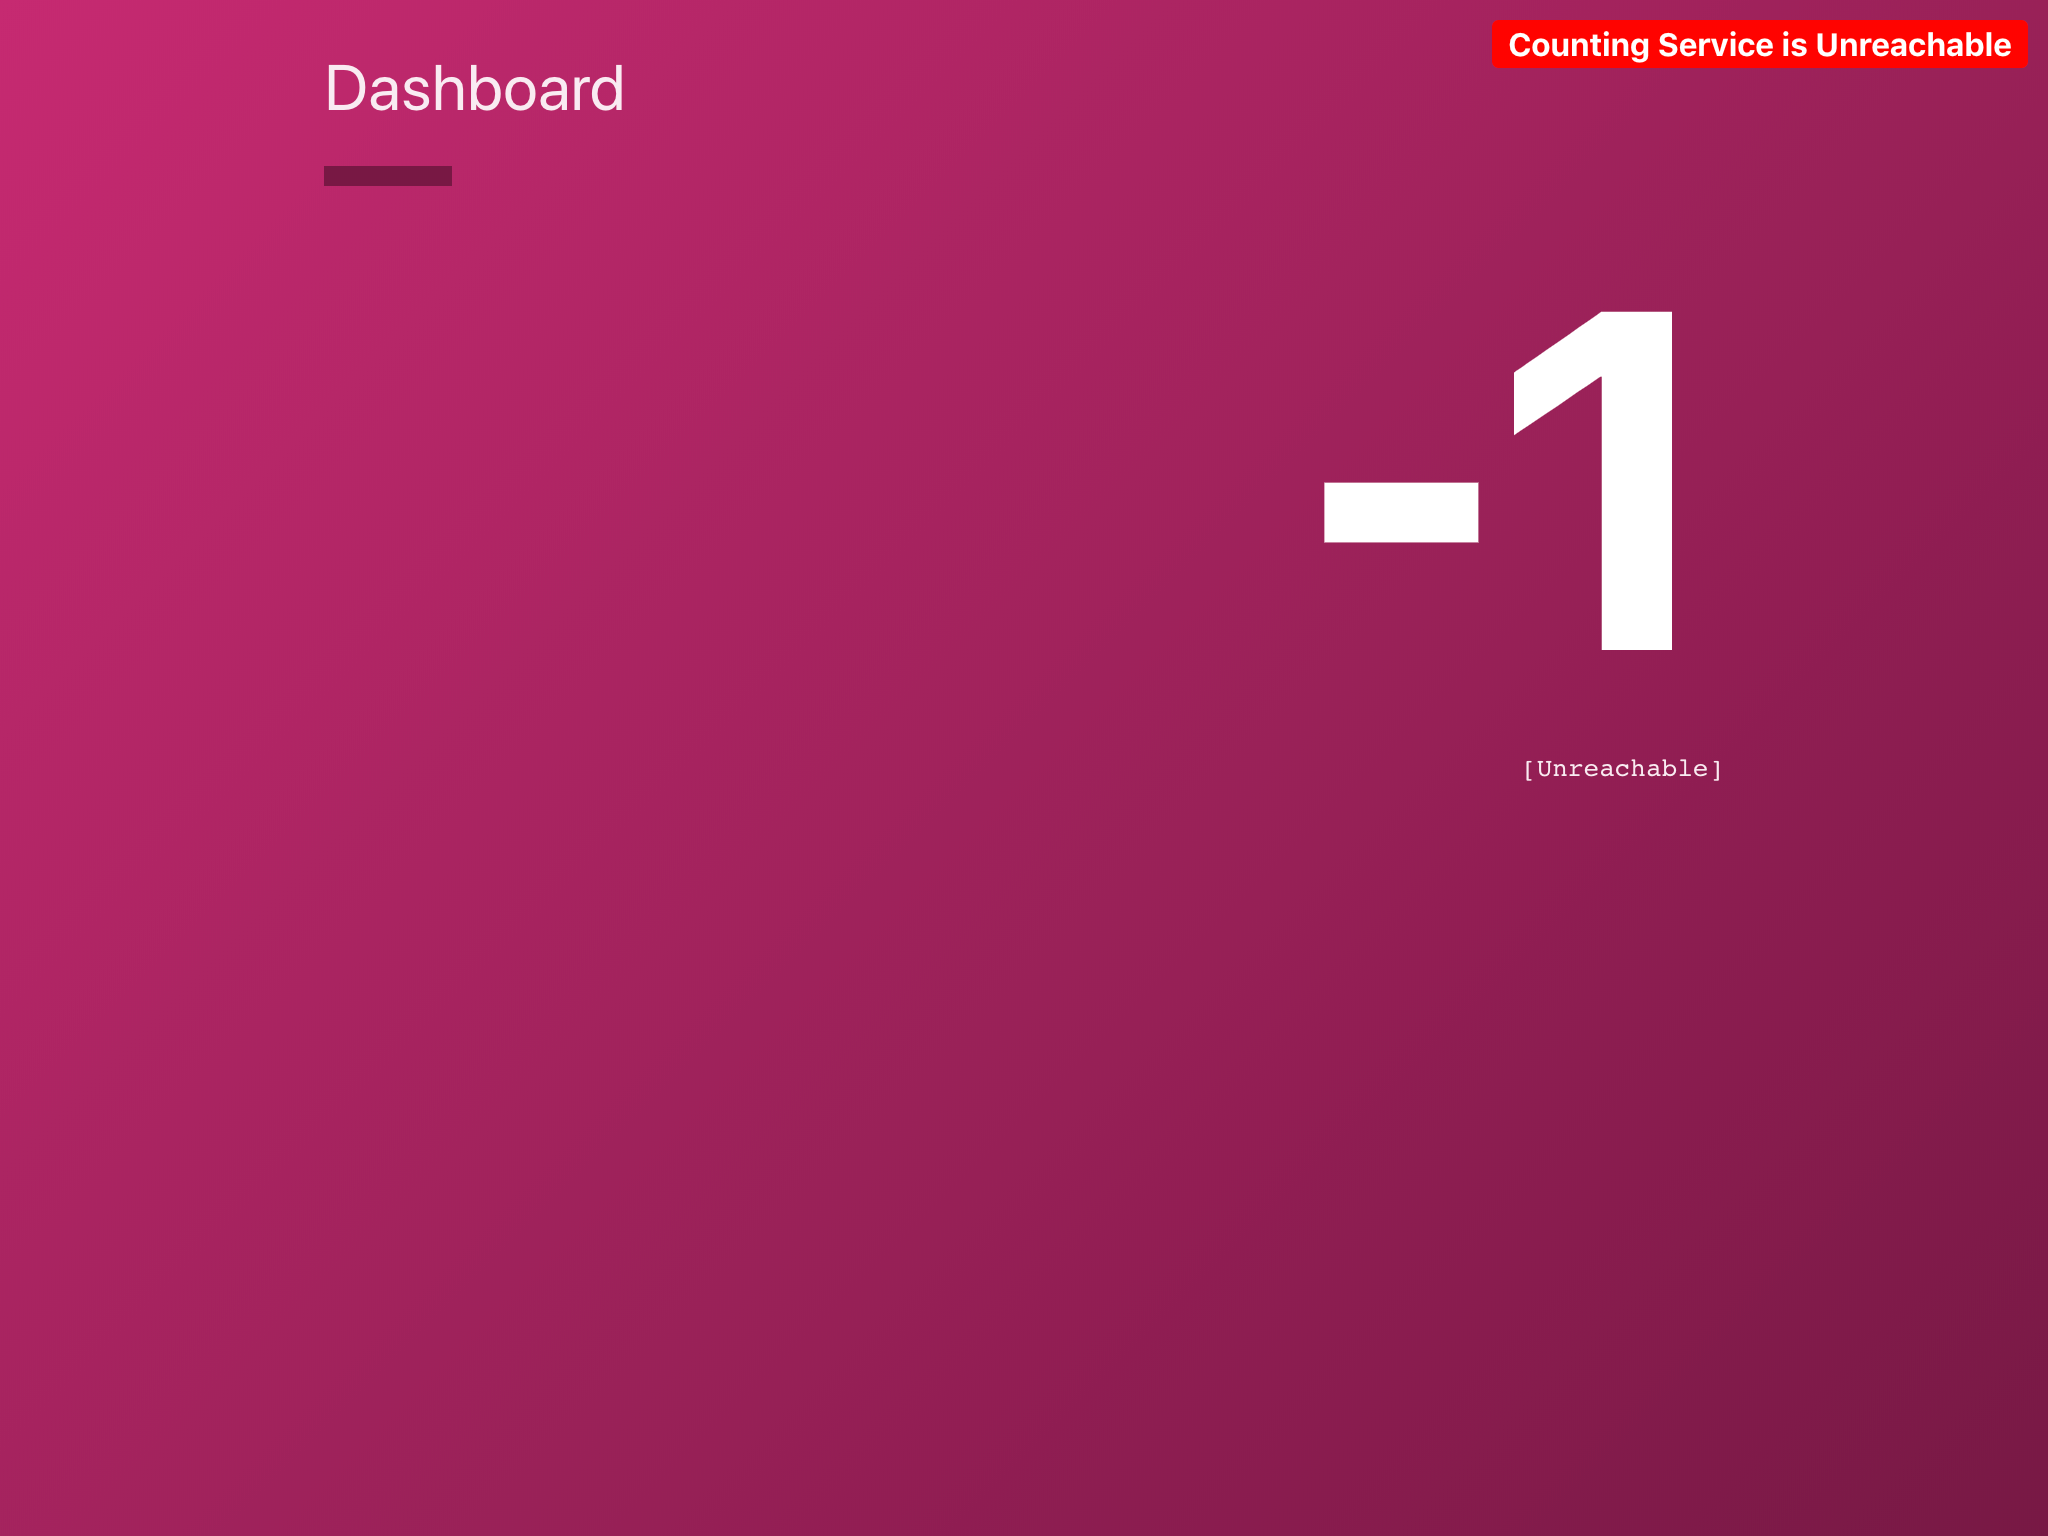 "Image of Dashboard UI. There is white text on a magenta background, with the page title ""Dashboard"" at the top left. There is a red indicator in the top right with the words ""Counting Service is Unreachable"" in white.  There is a large number -1 to show sample counting output. The word ""Unreachable"" surrounded by square brackets is in monospaced type underneath the large numbers."